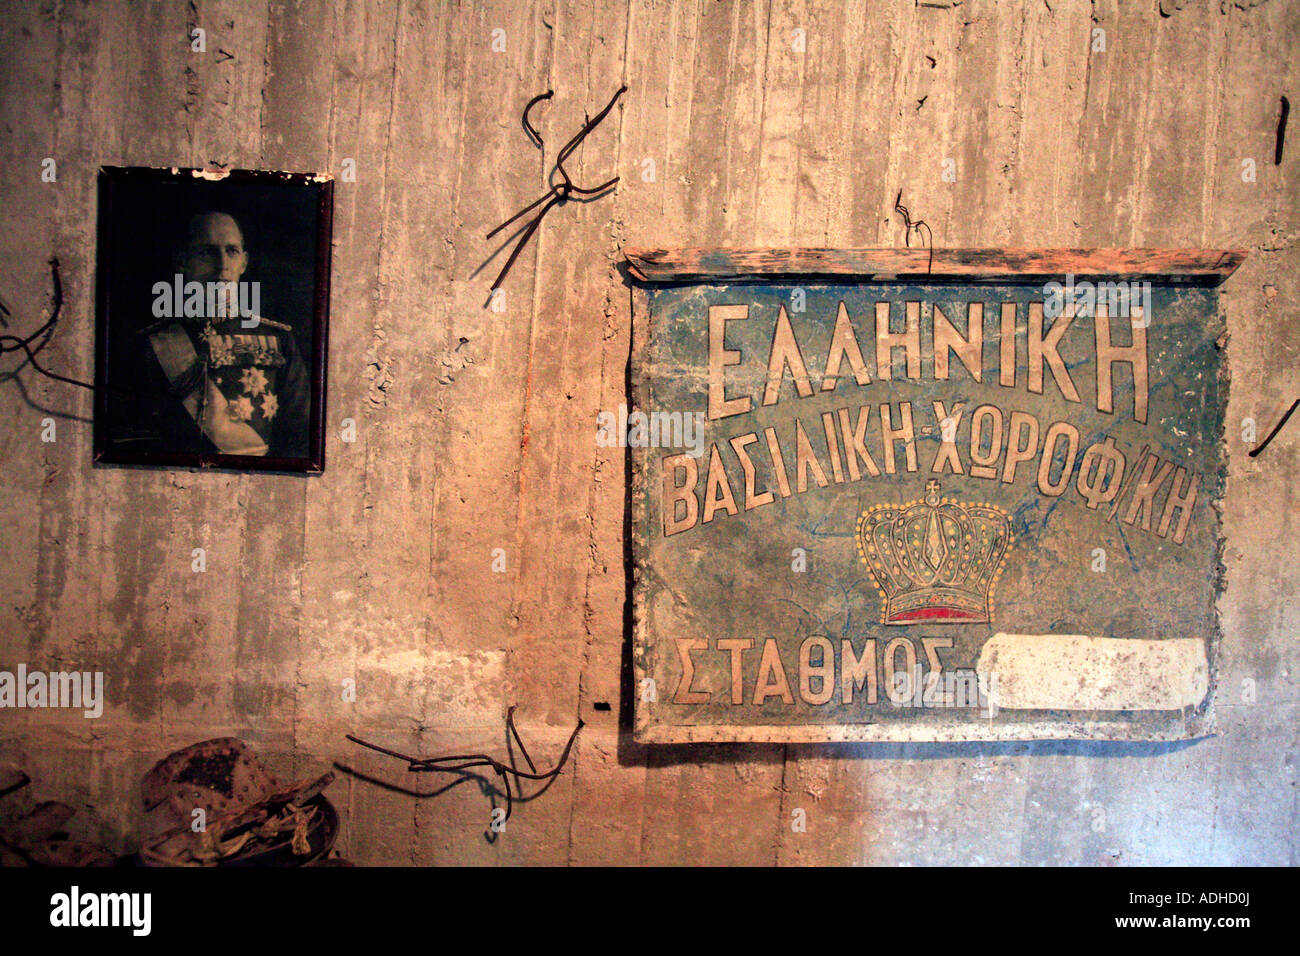 EUROPE GREECE AN OLD FASHIONED SIGN FOR THE GREEK ROYAL FAMILY AND A BLACK AND WHITE PICTURE OF THE GREEK KING - Stock Image